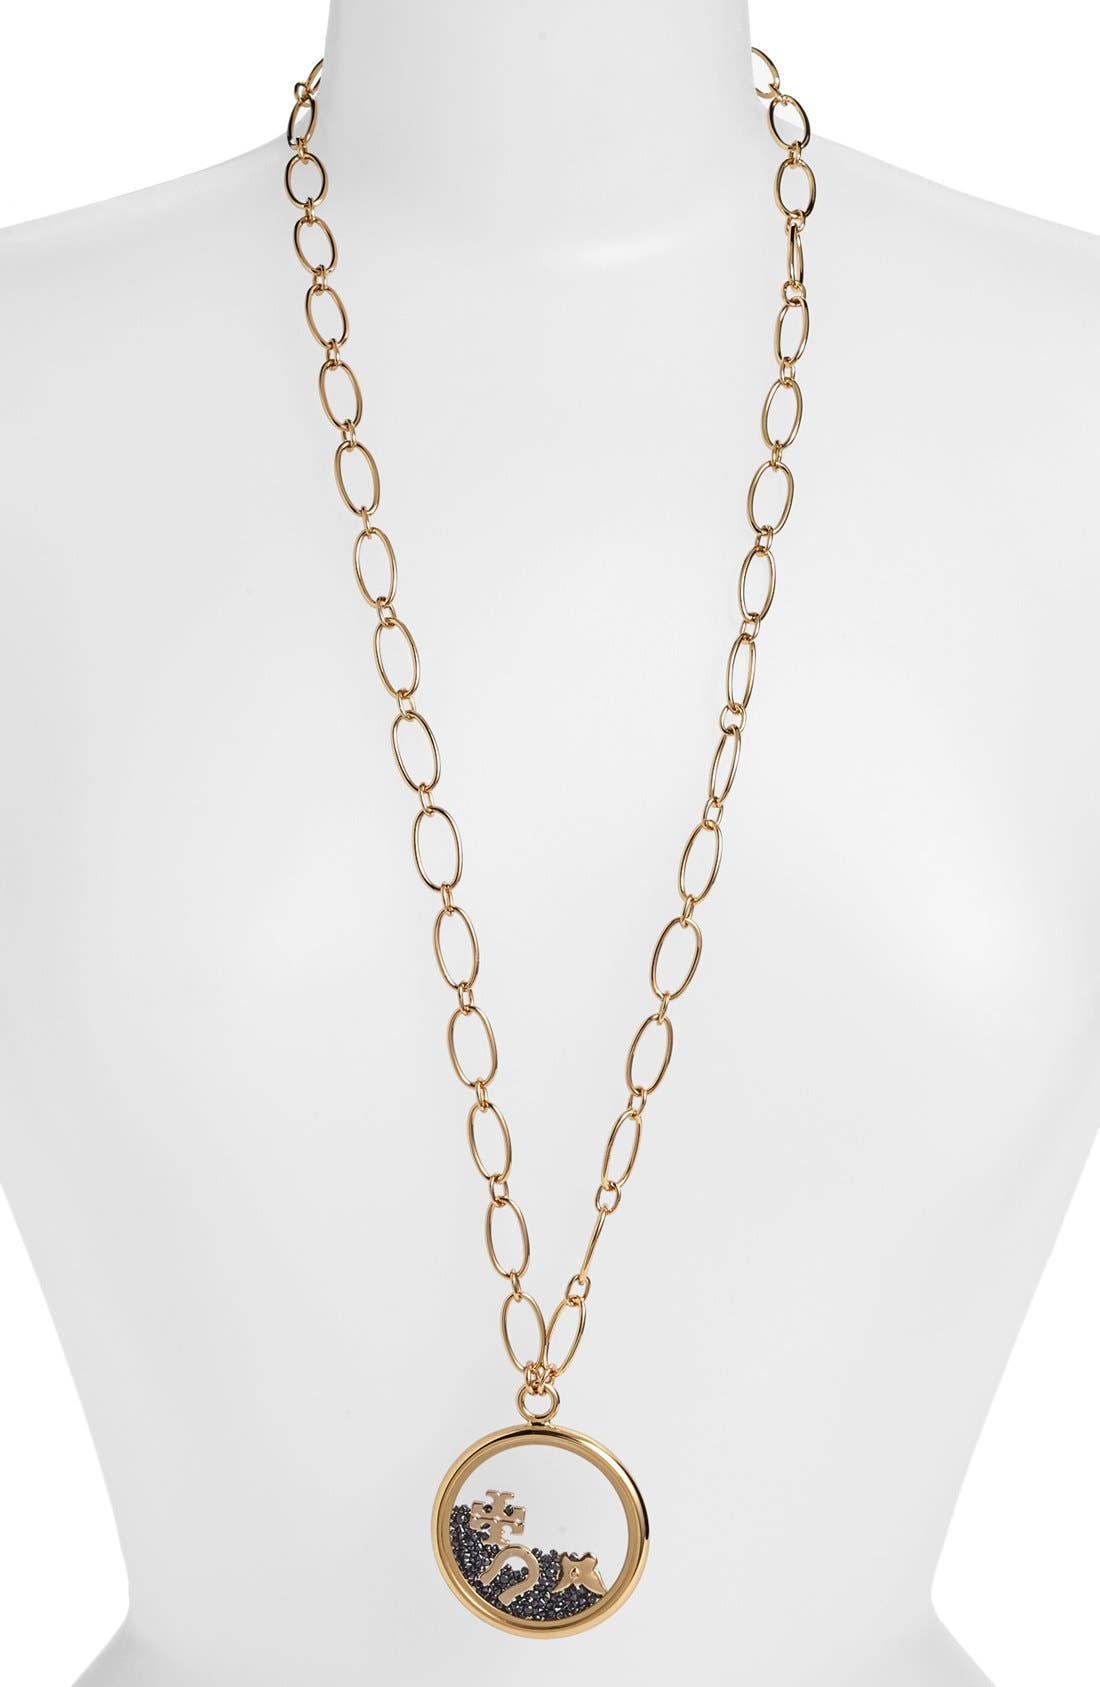 Alternate Image 1 Selected - Tory Burch 'Sylbie' Glitter Pendant Chain Necklace